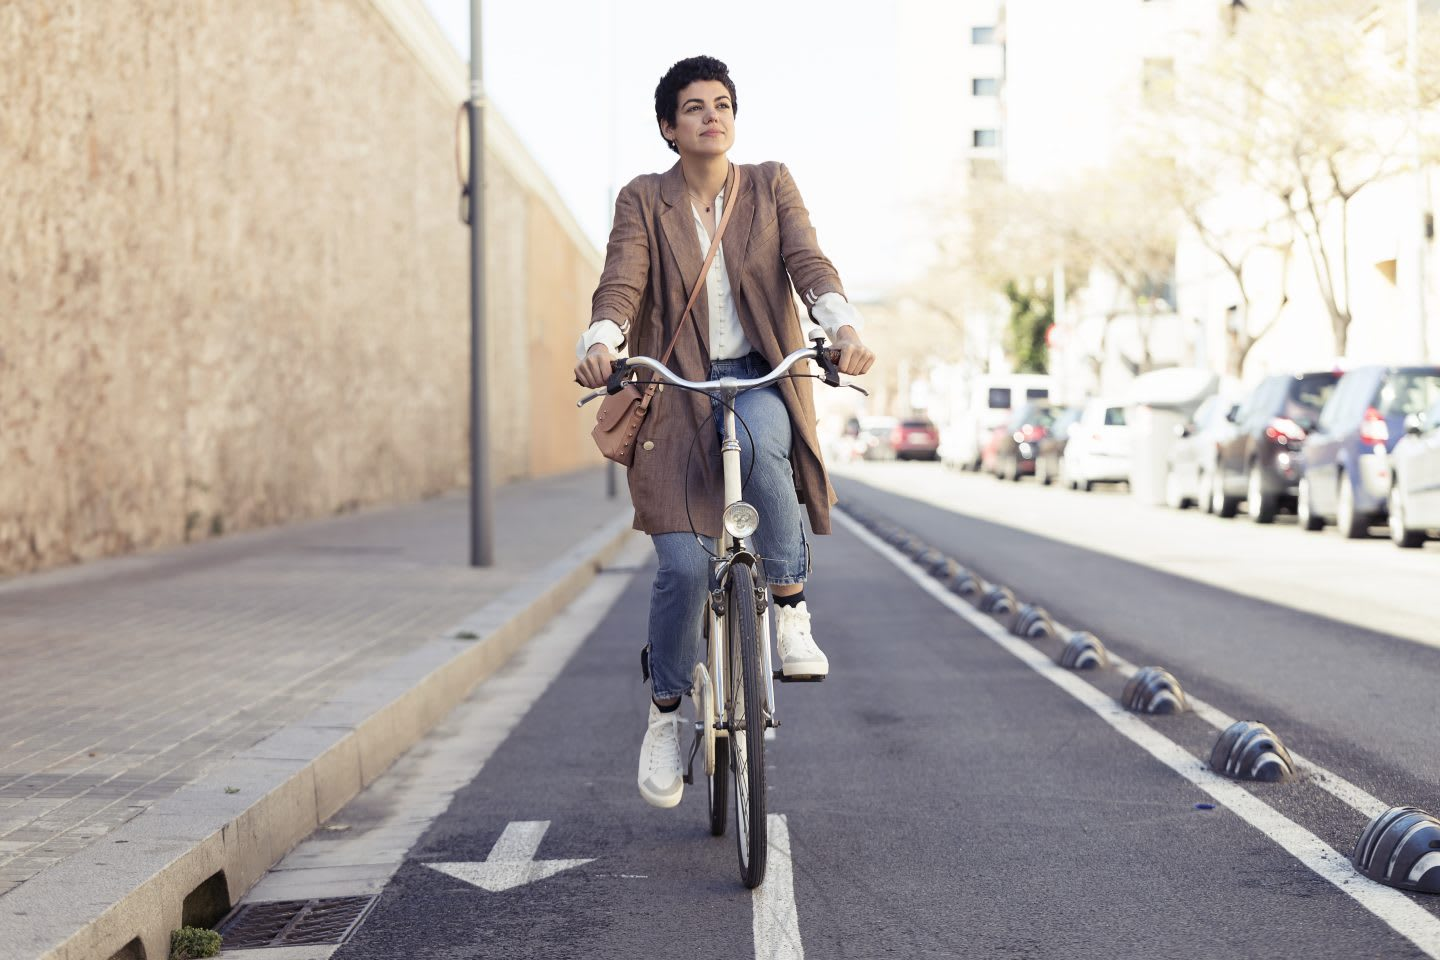 Woman with bike on bicycle lane in the city, commuting, biking, bike, cyclist, cycling